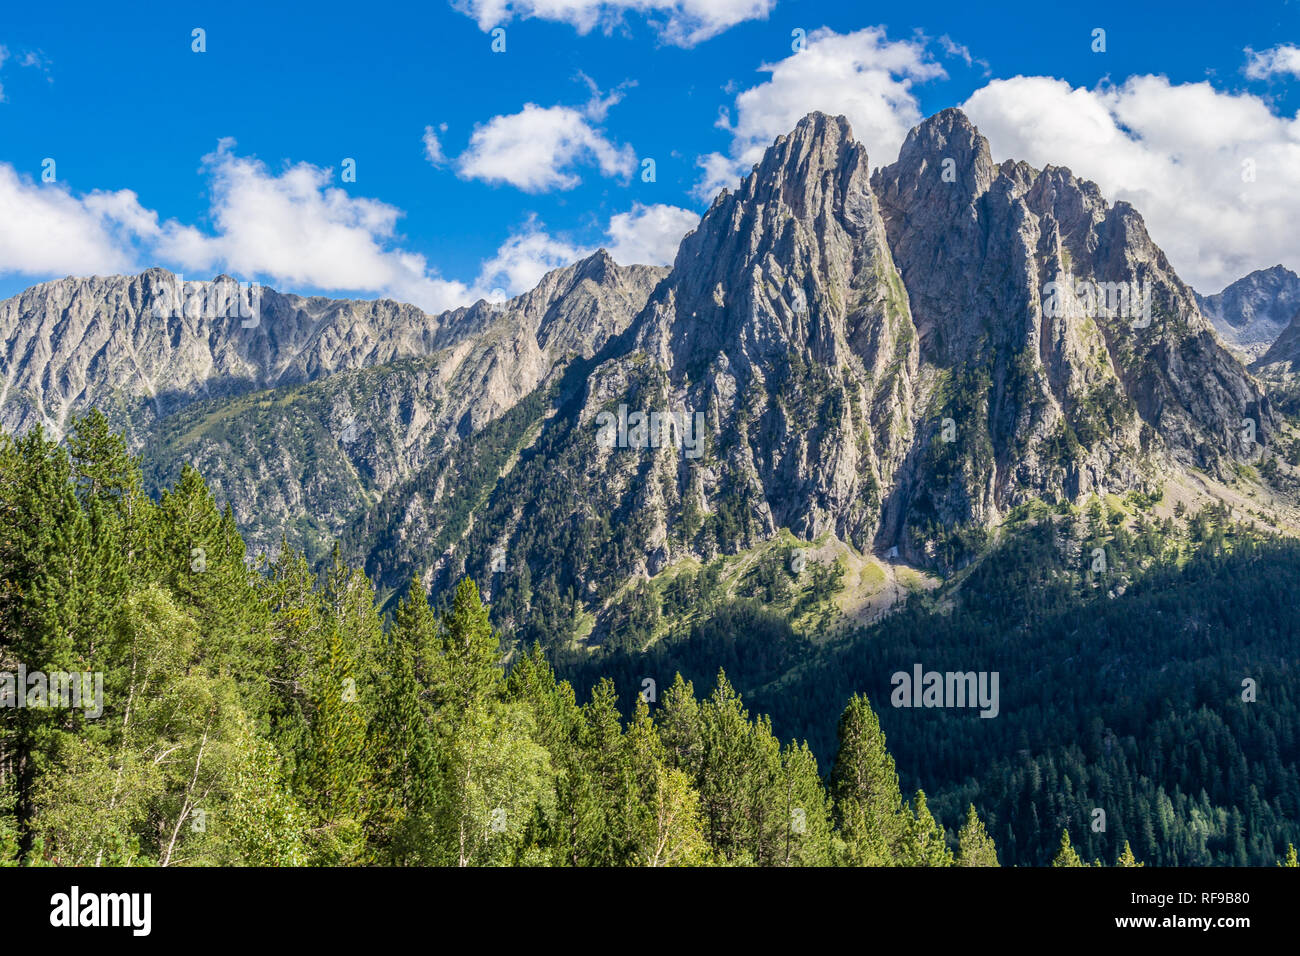 'The Enchanted' Mountain in St. Maurici National Park (Catalonia, Spain). - Stock Image